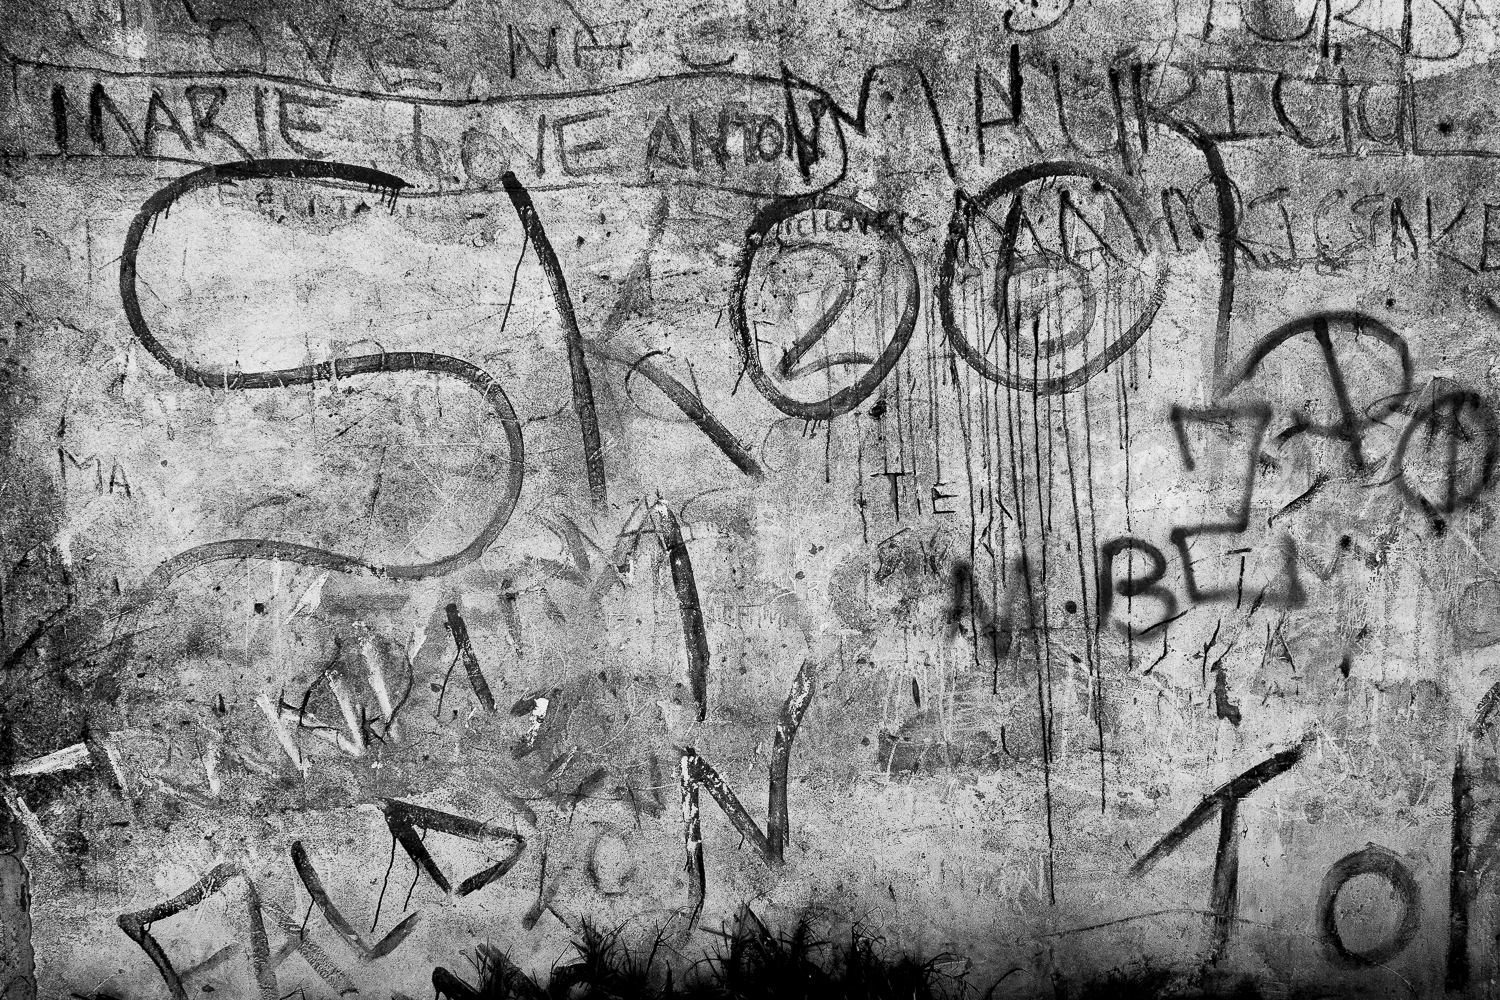 """Detail of wall with the word """"Skool"""" and gang related tags, Mitchell's Plain, 2013."""